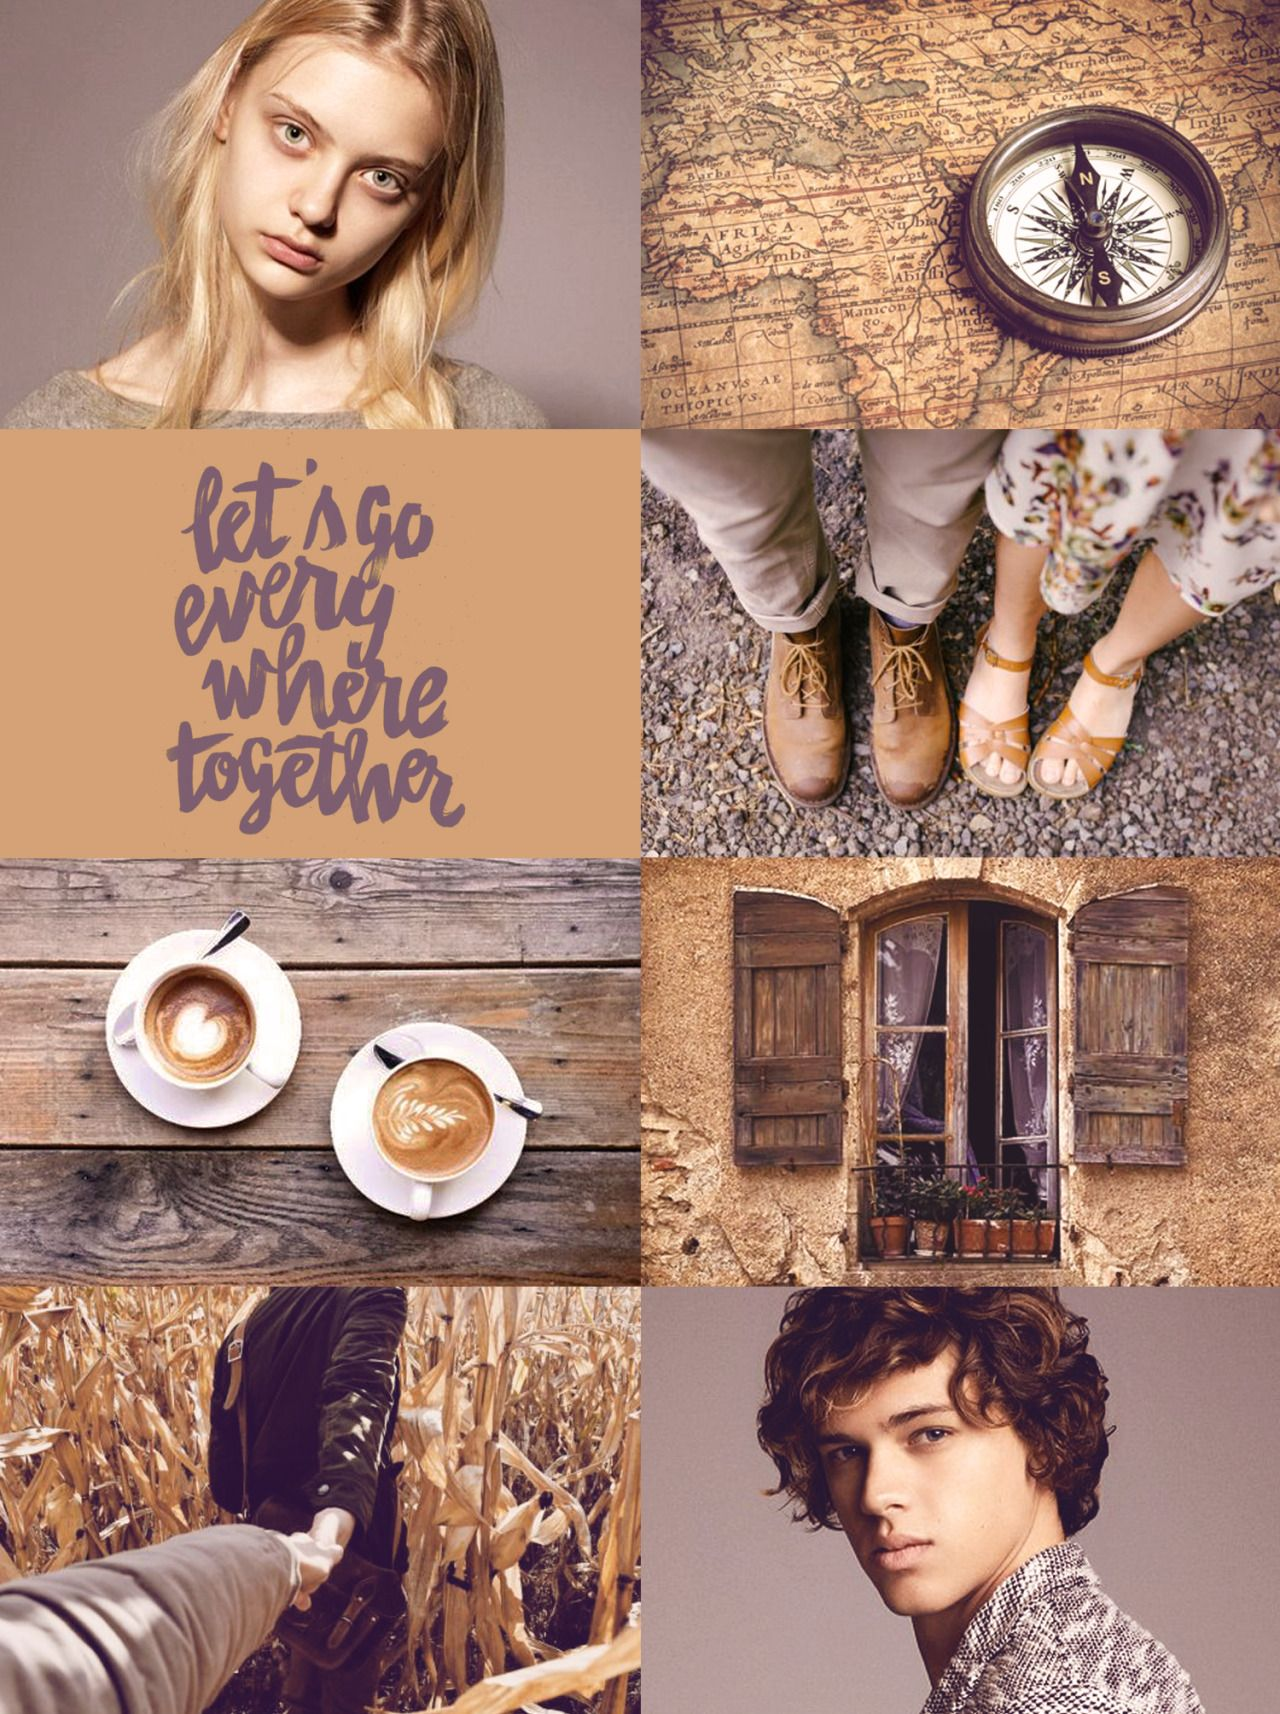 Luna Lovegood Rolf Scamander Requested By Arrivingatthegatesofcamelot Luna Lovegood Rolf Scamander Luna Lovegood Rolf Scamander